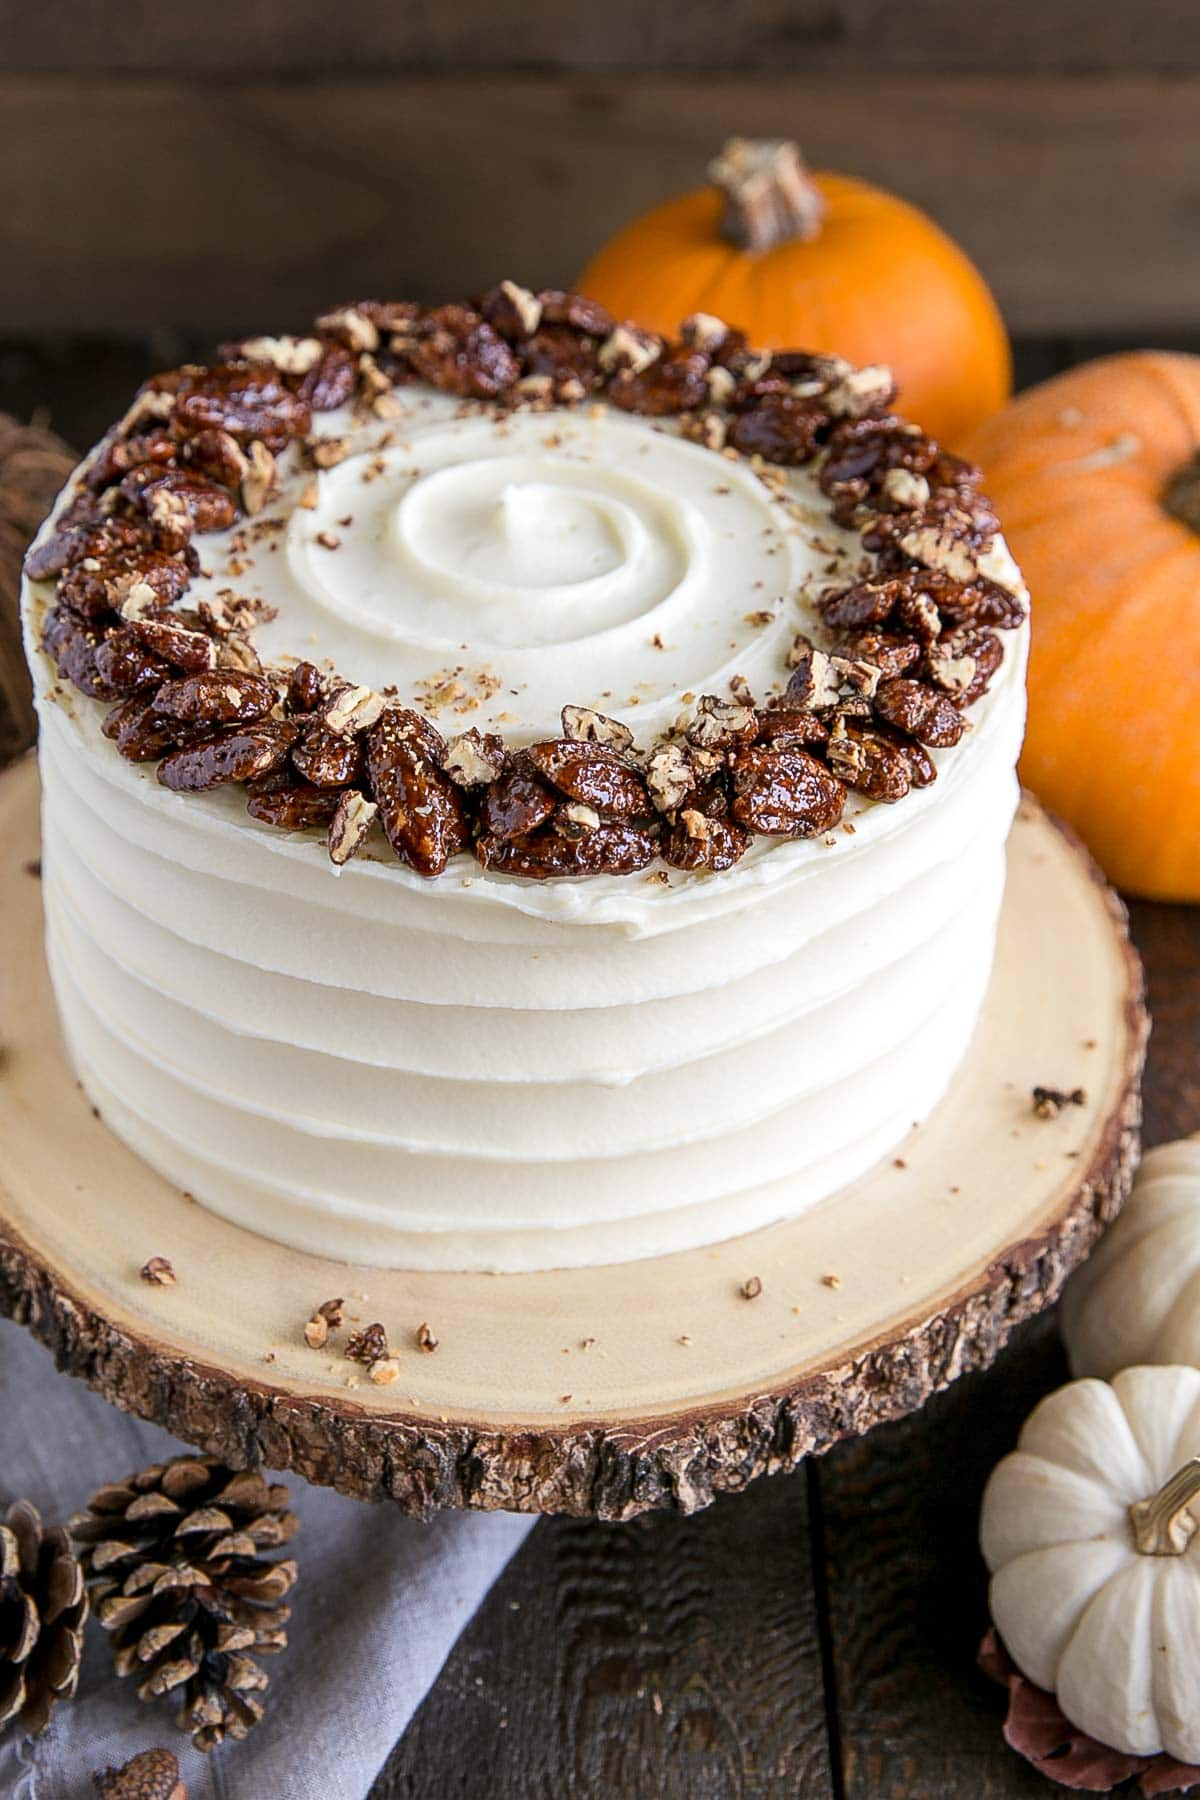 Pumpkin cake with cream cheese frosting on a rustic cake stand.